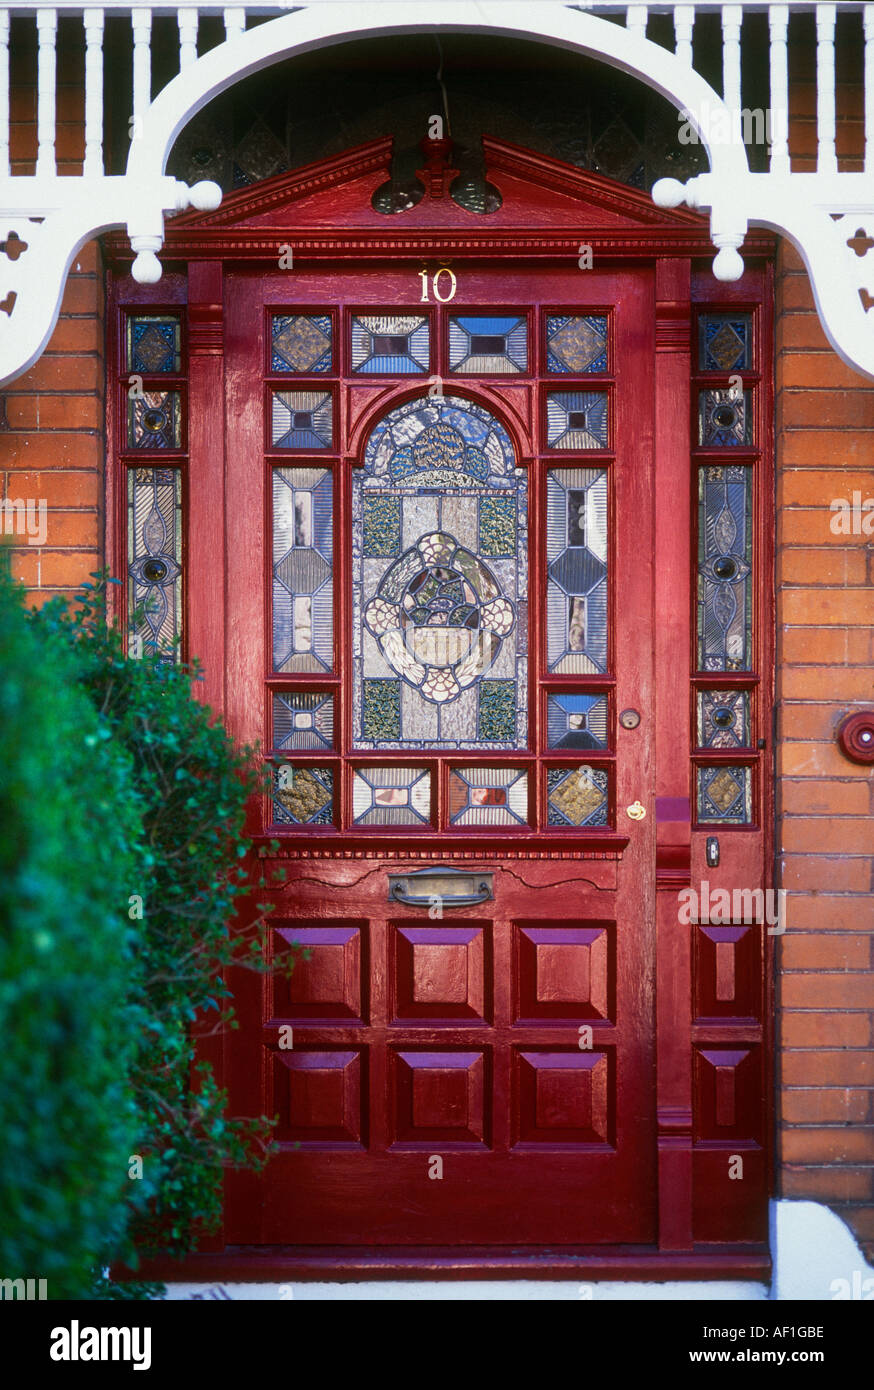 Exterior stained glass red front door british housing london stock exterior stained glass red front door british housing london rubansaba